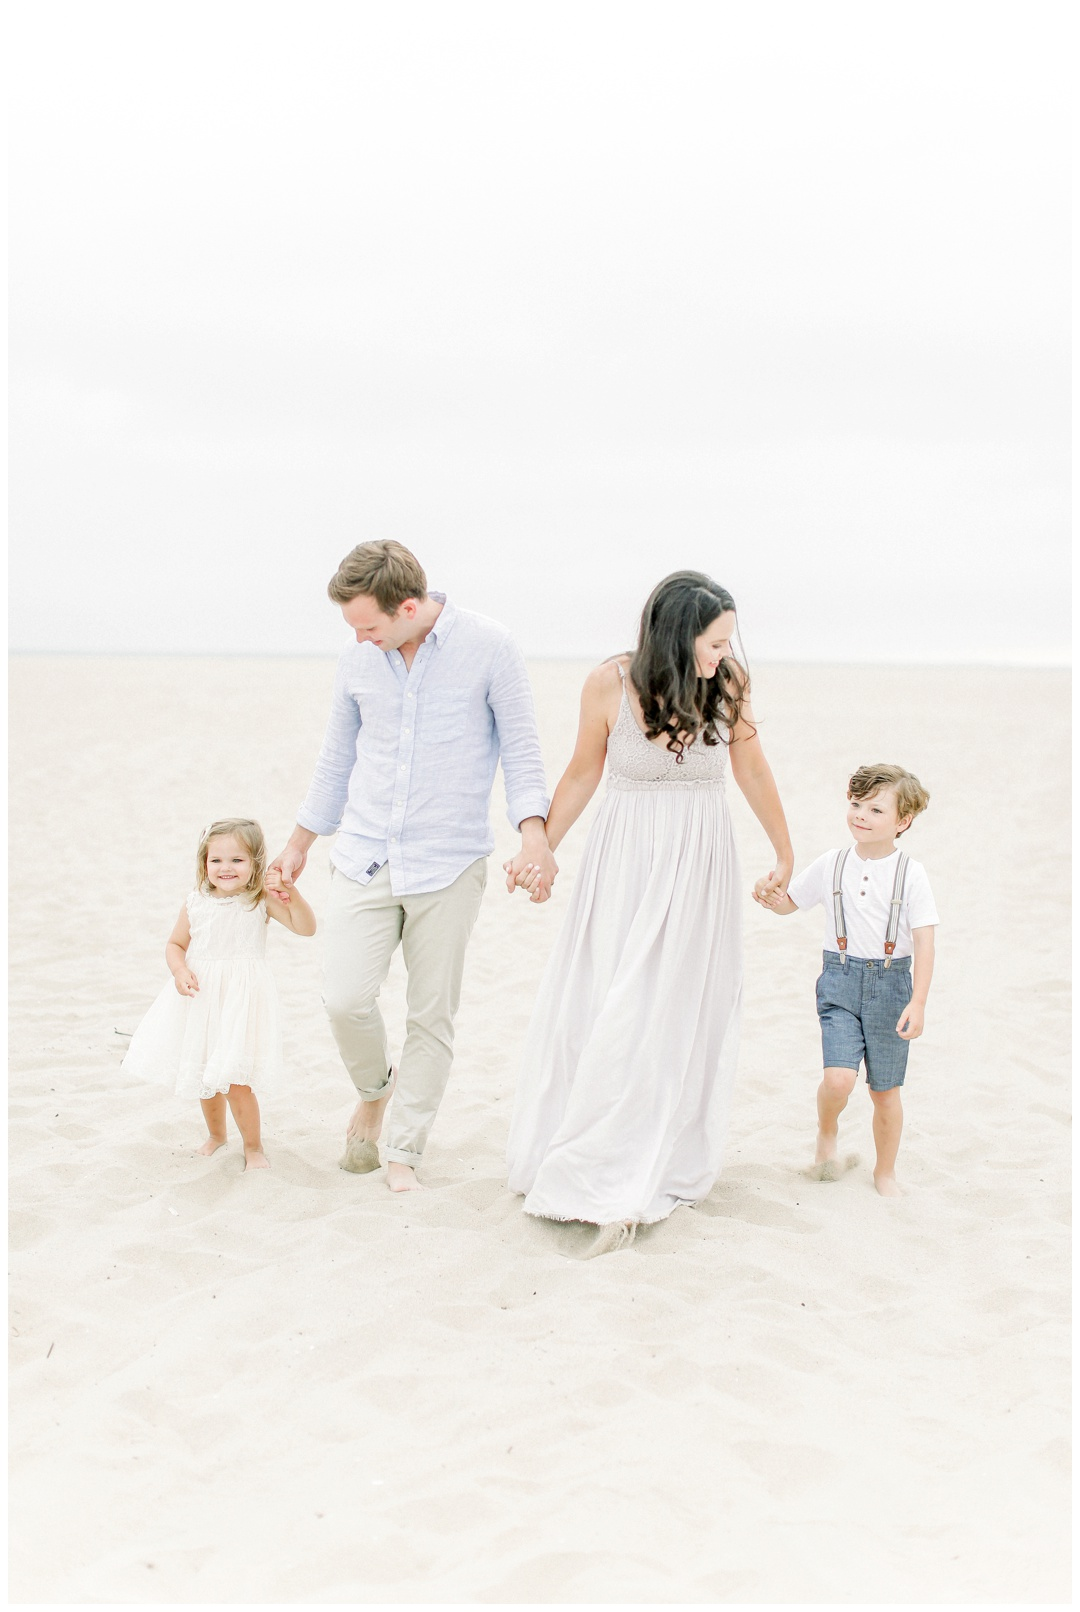 Huntington_Beach_Family_Photographer_The_Wood_Family_Lifestyle_Newport_Beach_Family_Photographer_Orange_County_Newborn_Photography_Cori_Kleckner_Photography_Orange_County_Beach_Photography_Huntington_Beach_Family_Session__1640.jpg